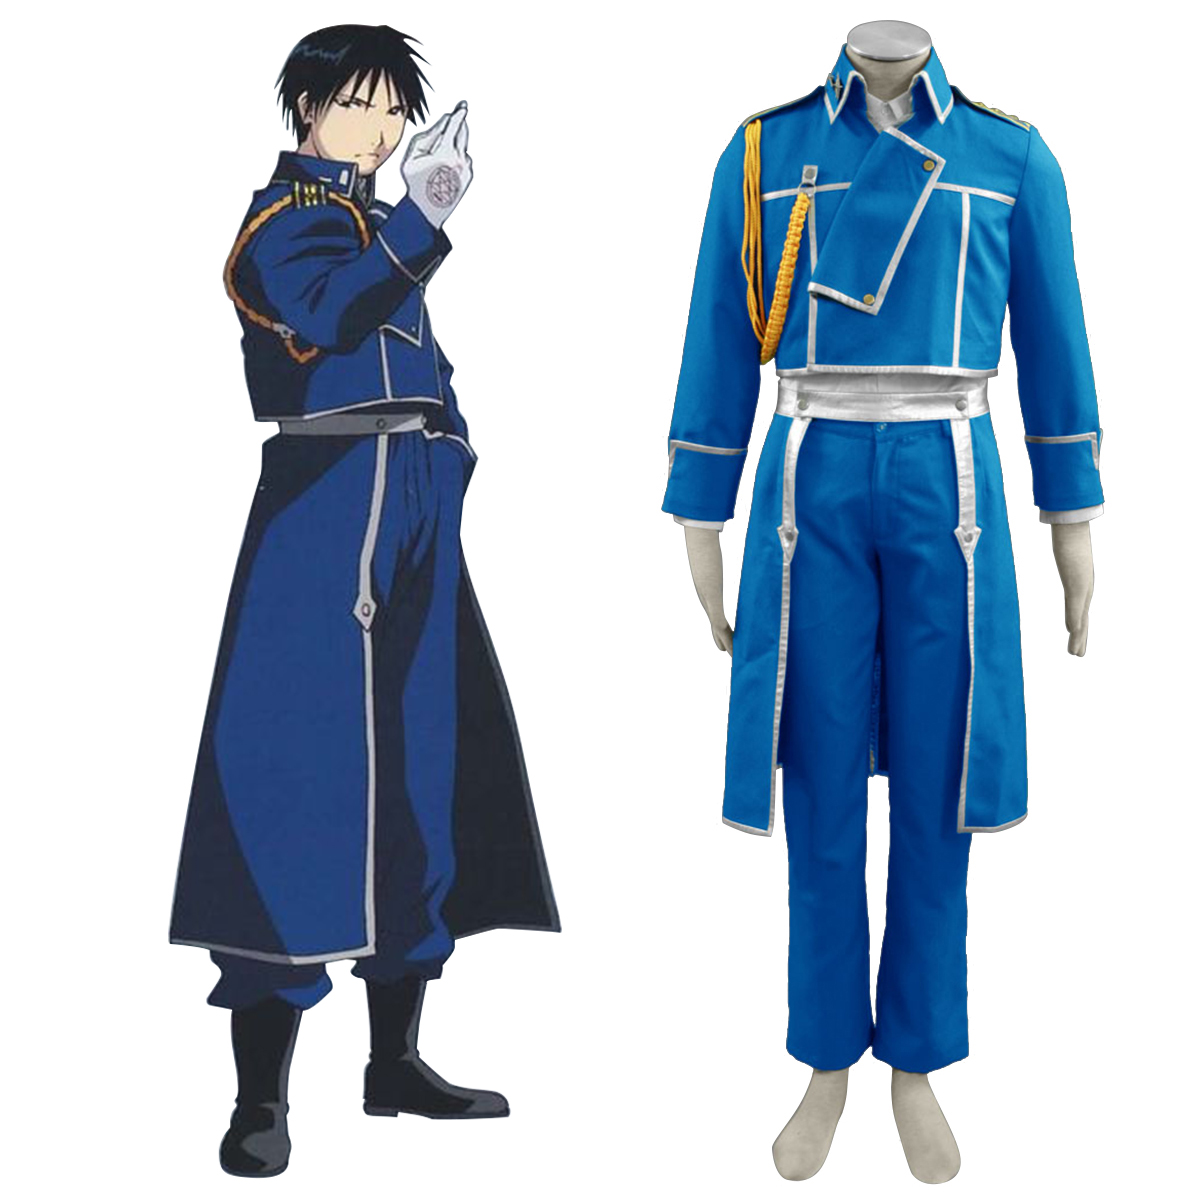 Fullmetal Alchemist Roy Mustang 1 Anime Cosplay Costumes Outfit